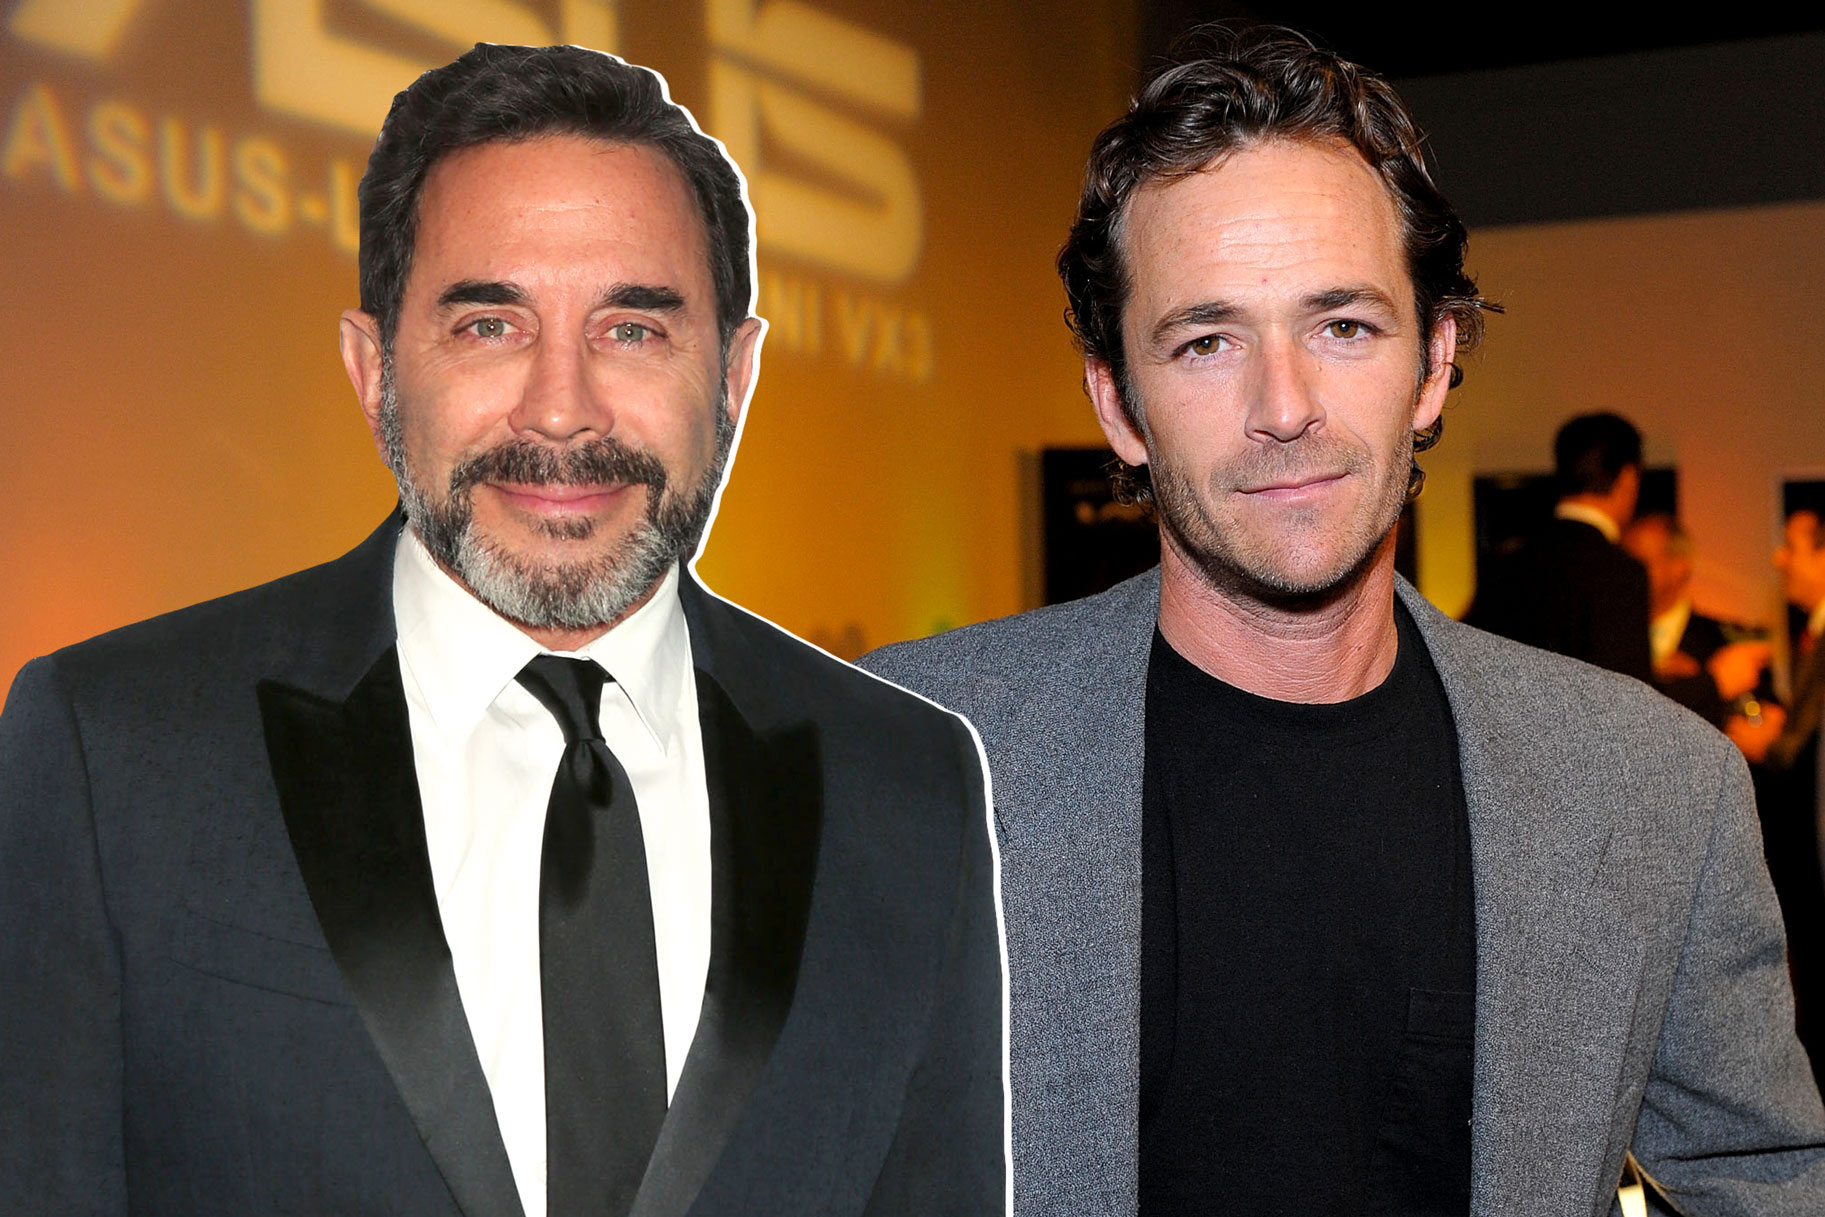 paul-nassif-luke-perry-dead.jpg